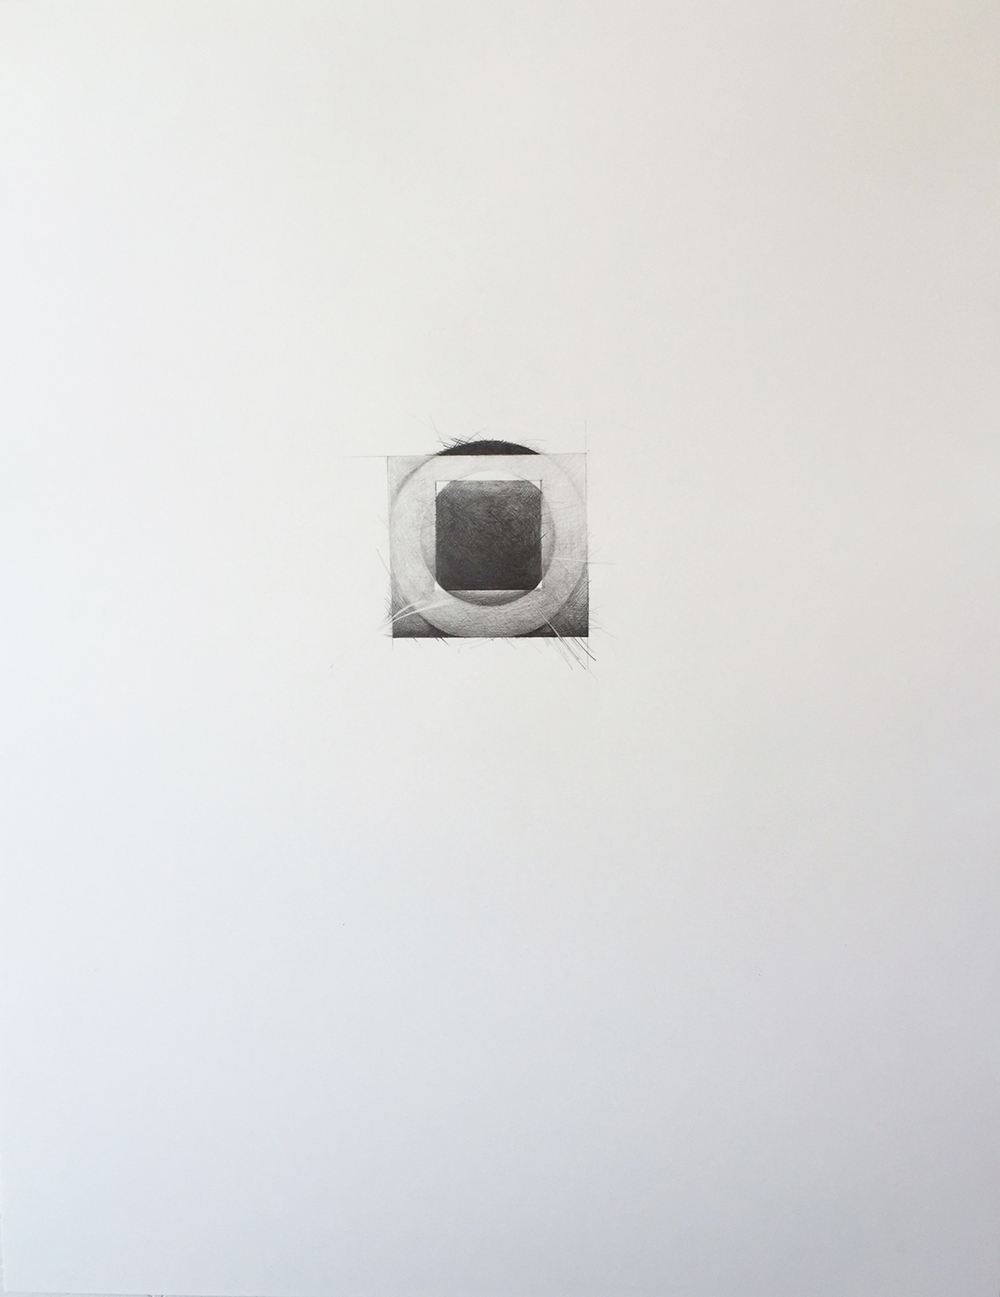 Ghidini, Grace 6, 2015, graphite and mica dust on paper, 28 1/2 x 22 1/2 inches